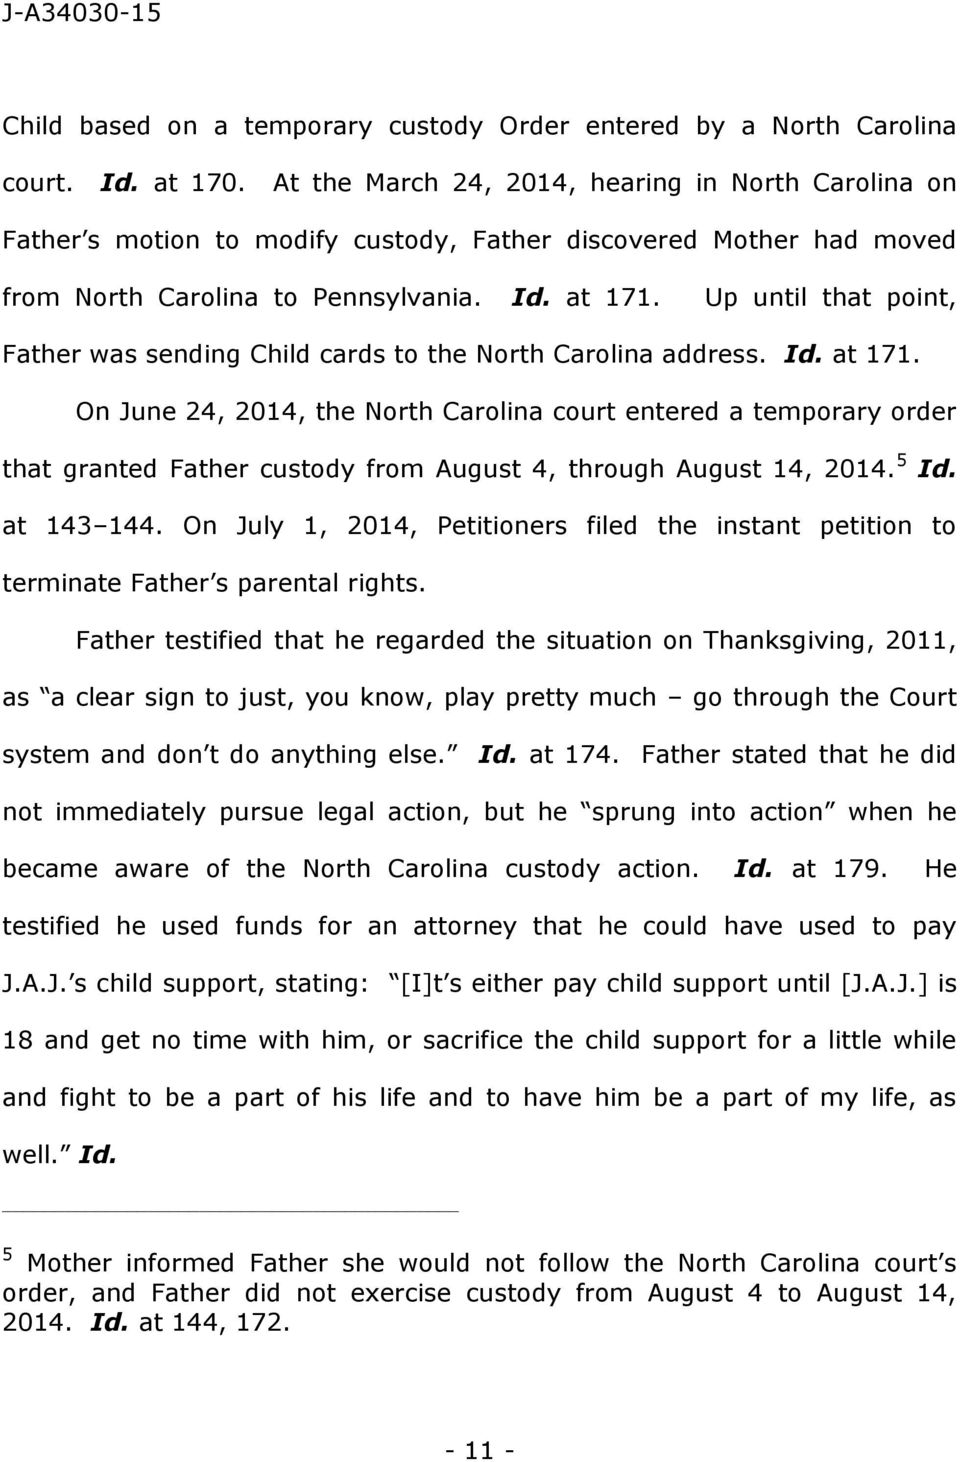 Up until that point, Father was sending Child cards to the North Carolina address. Id. at 171.